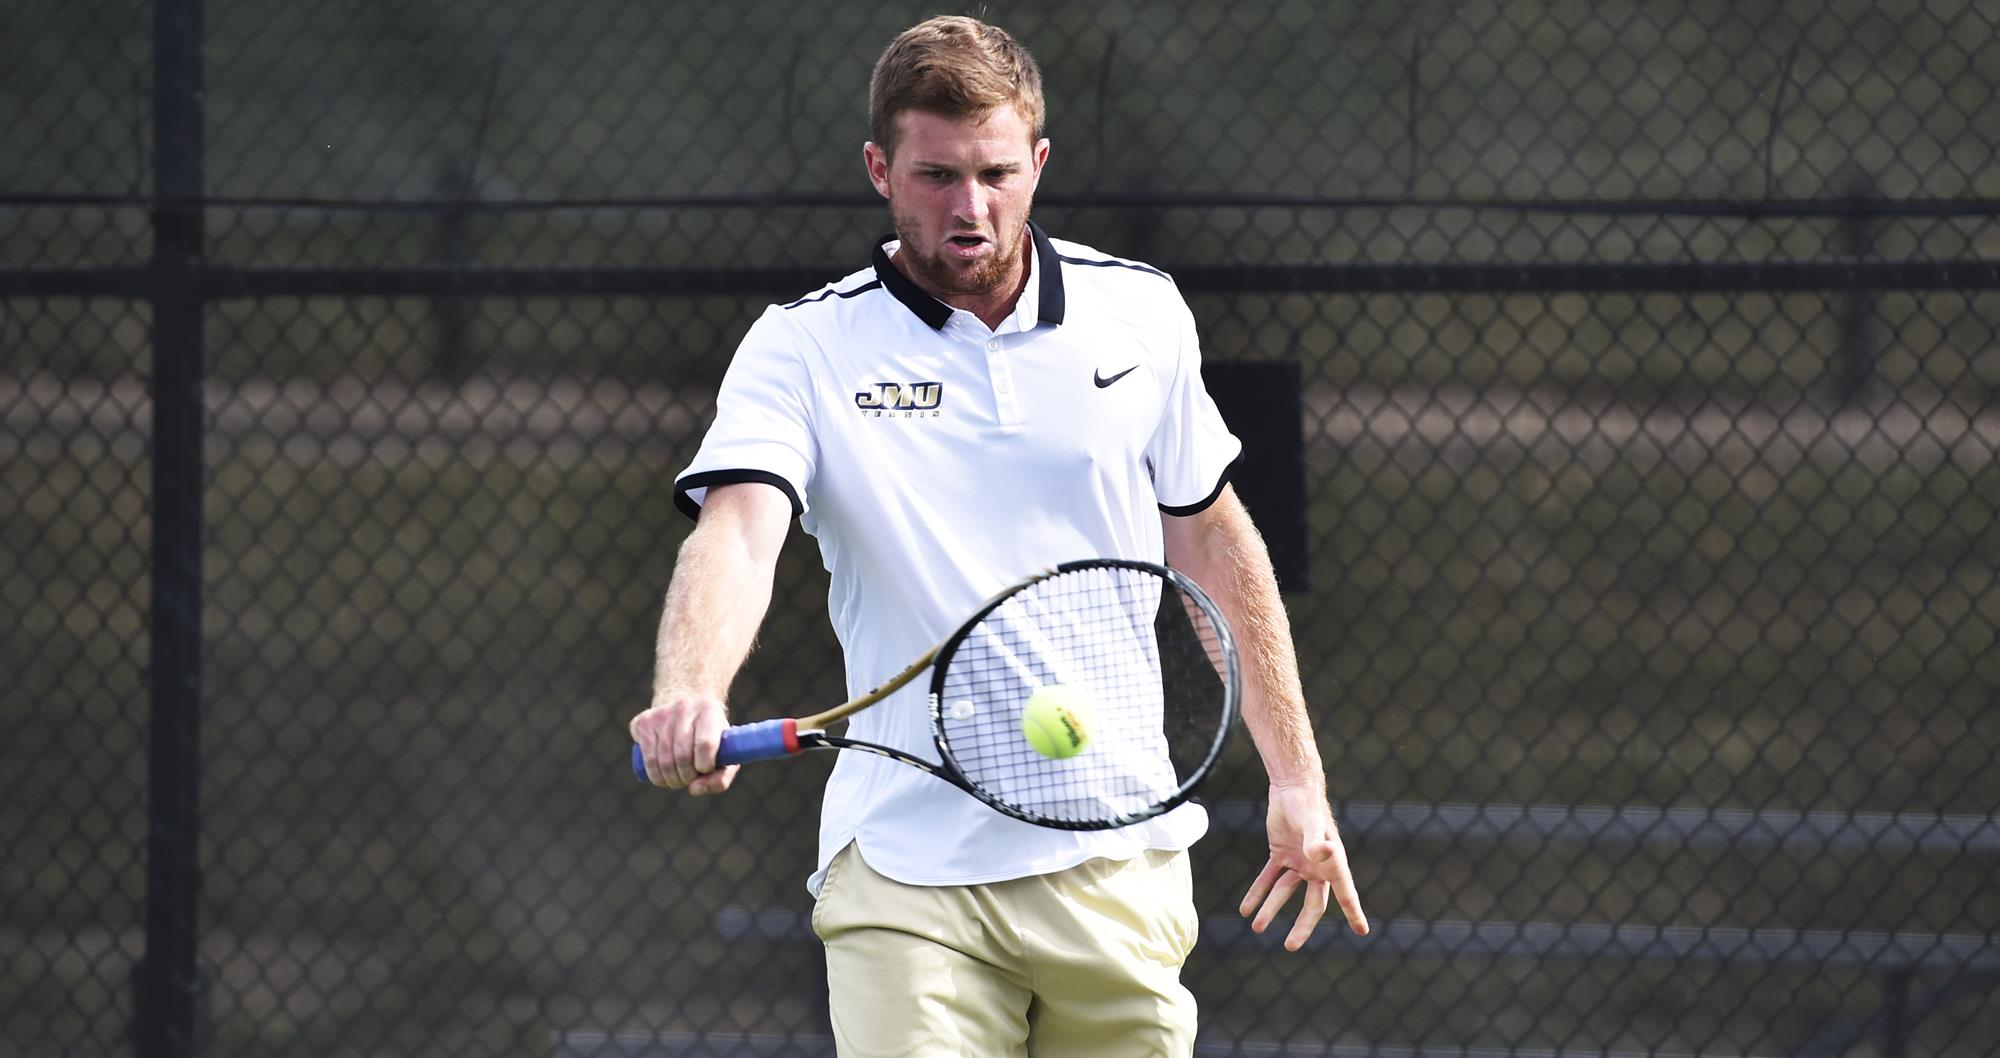 Men's Tennis: Doubles Proves the Difference in JMU's 4-3 Loss at Elon)